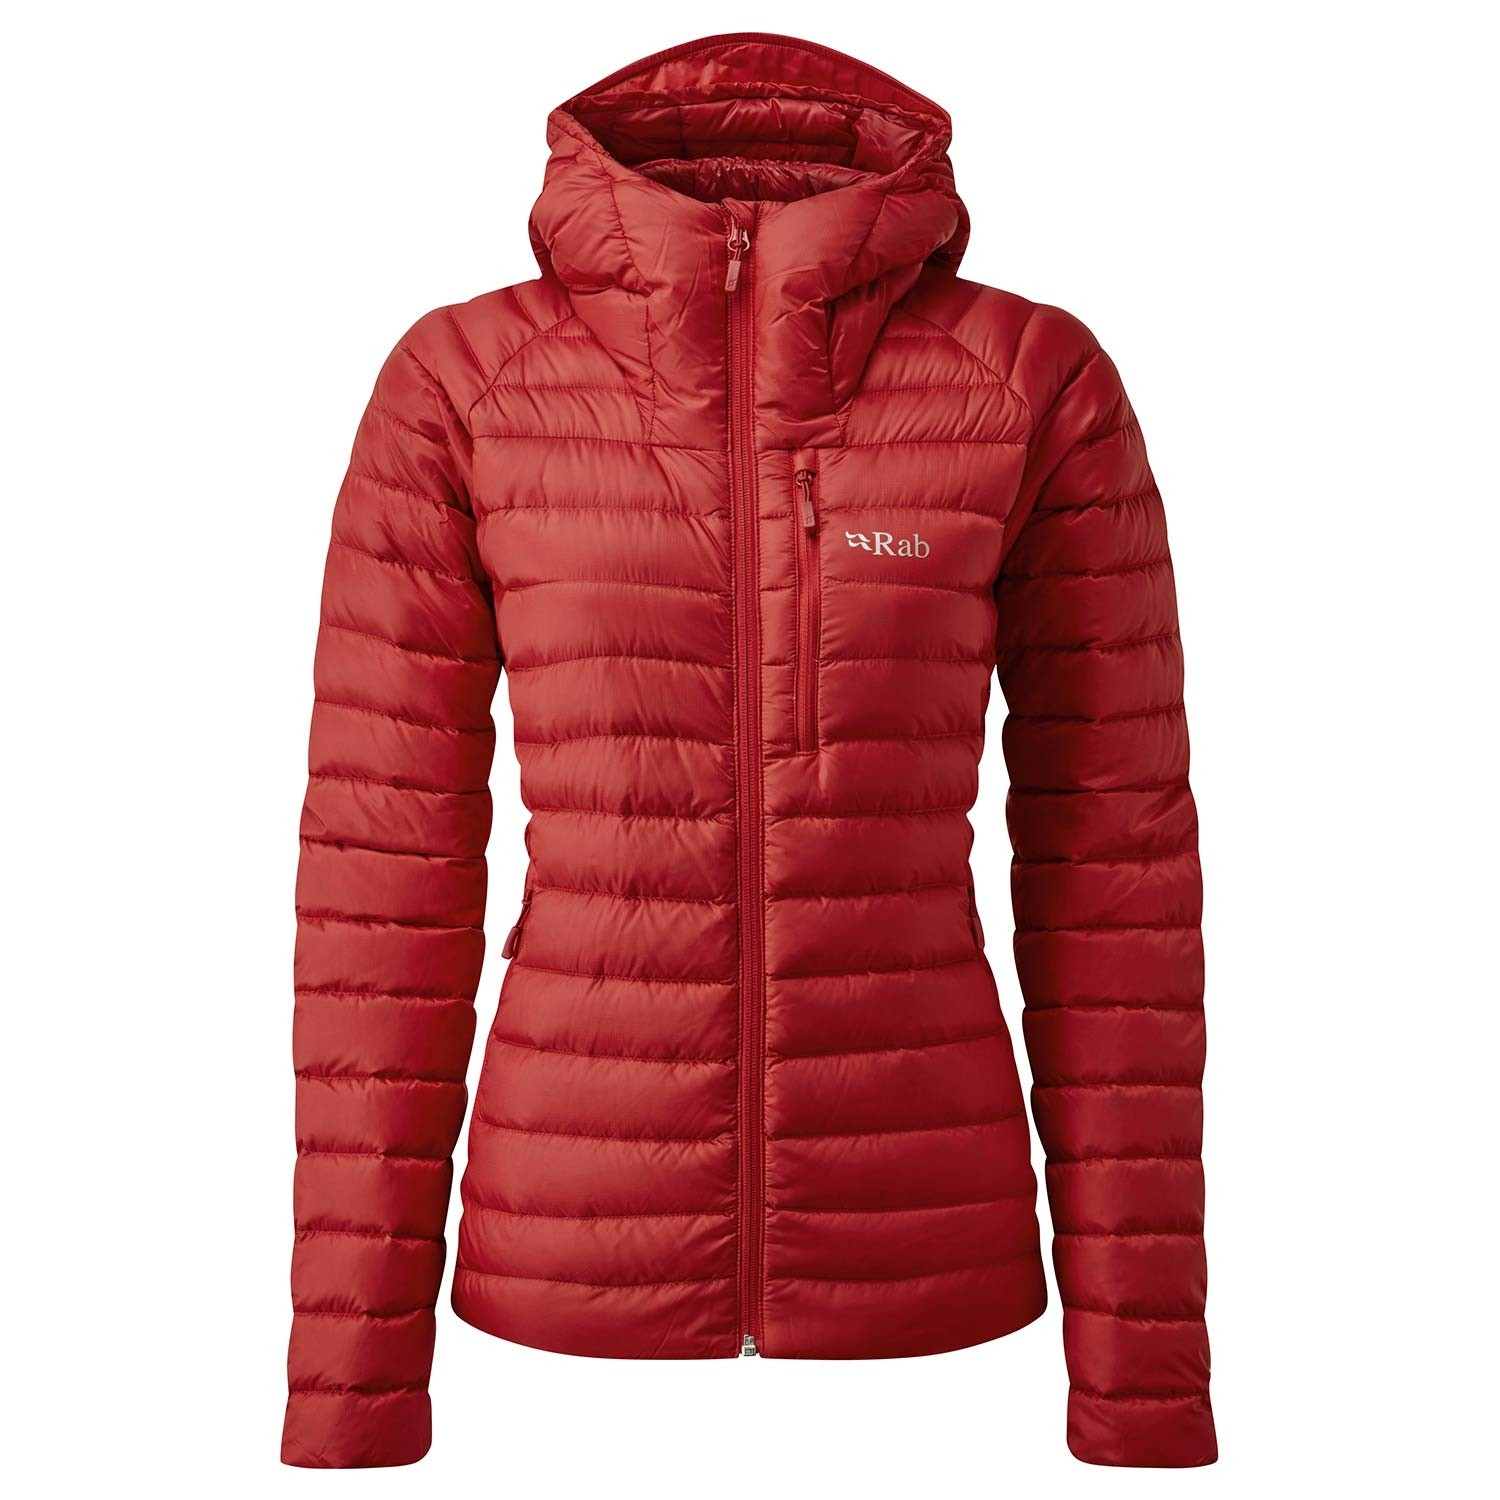 Rab Microlight Alpine Down Jacket - Women's - Ascent Red